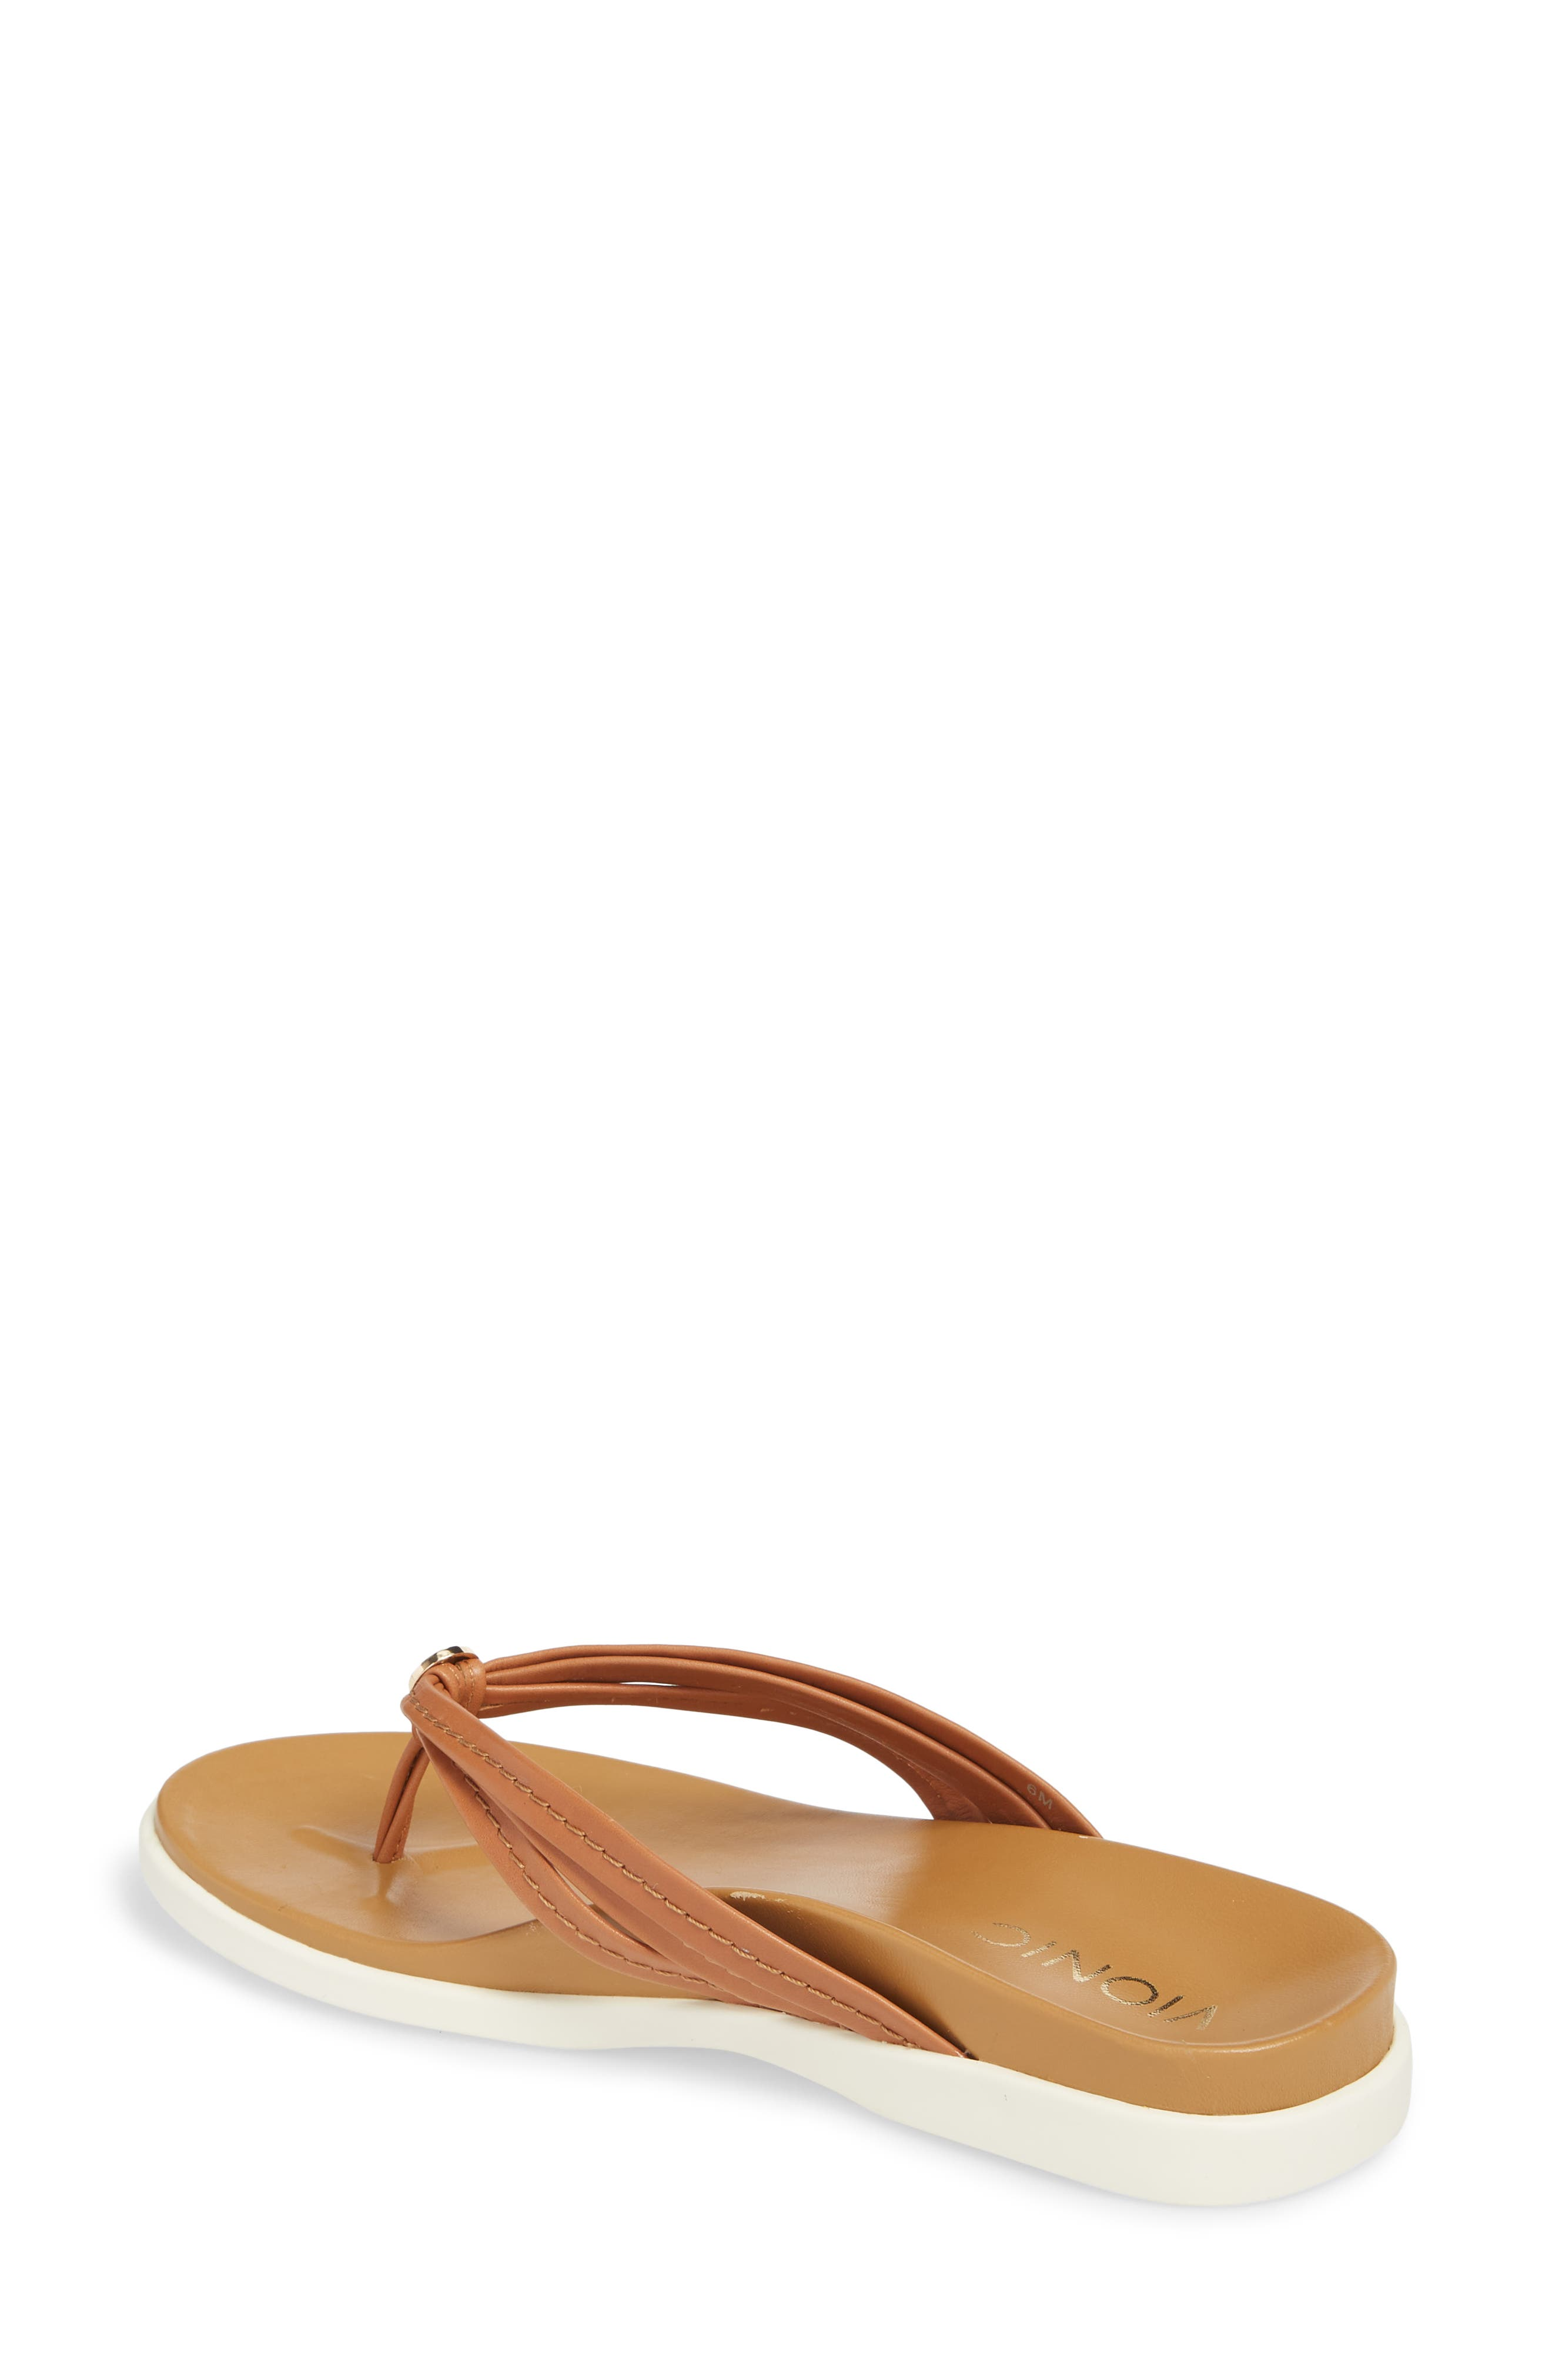 Catalina Flip Flop,                             Alternate thumbnail 2, color,                             Tan Leather